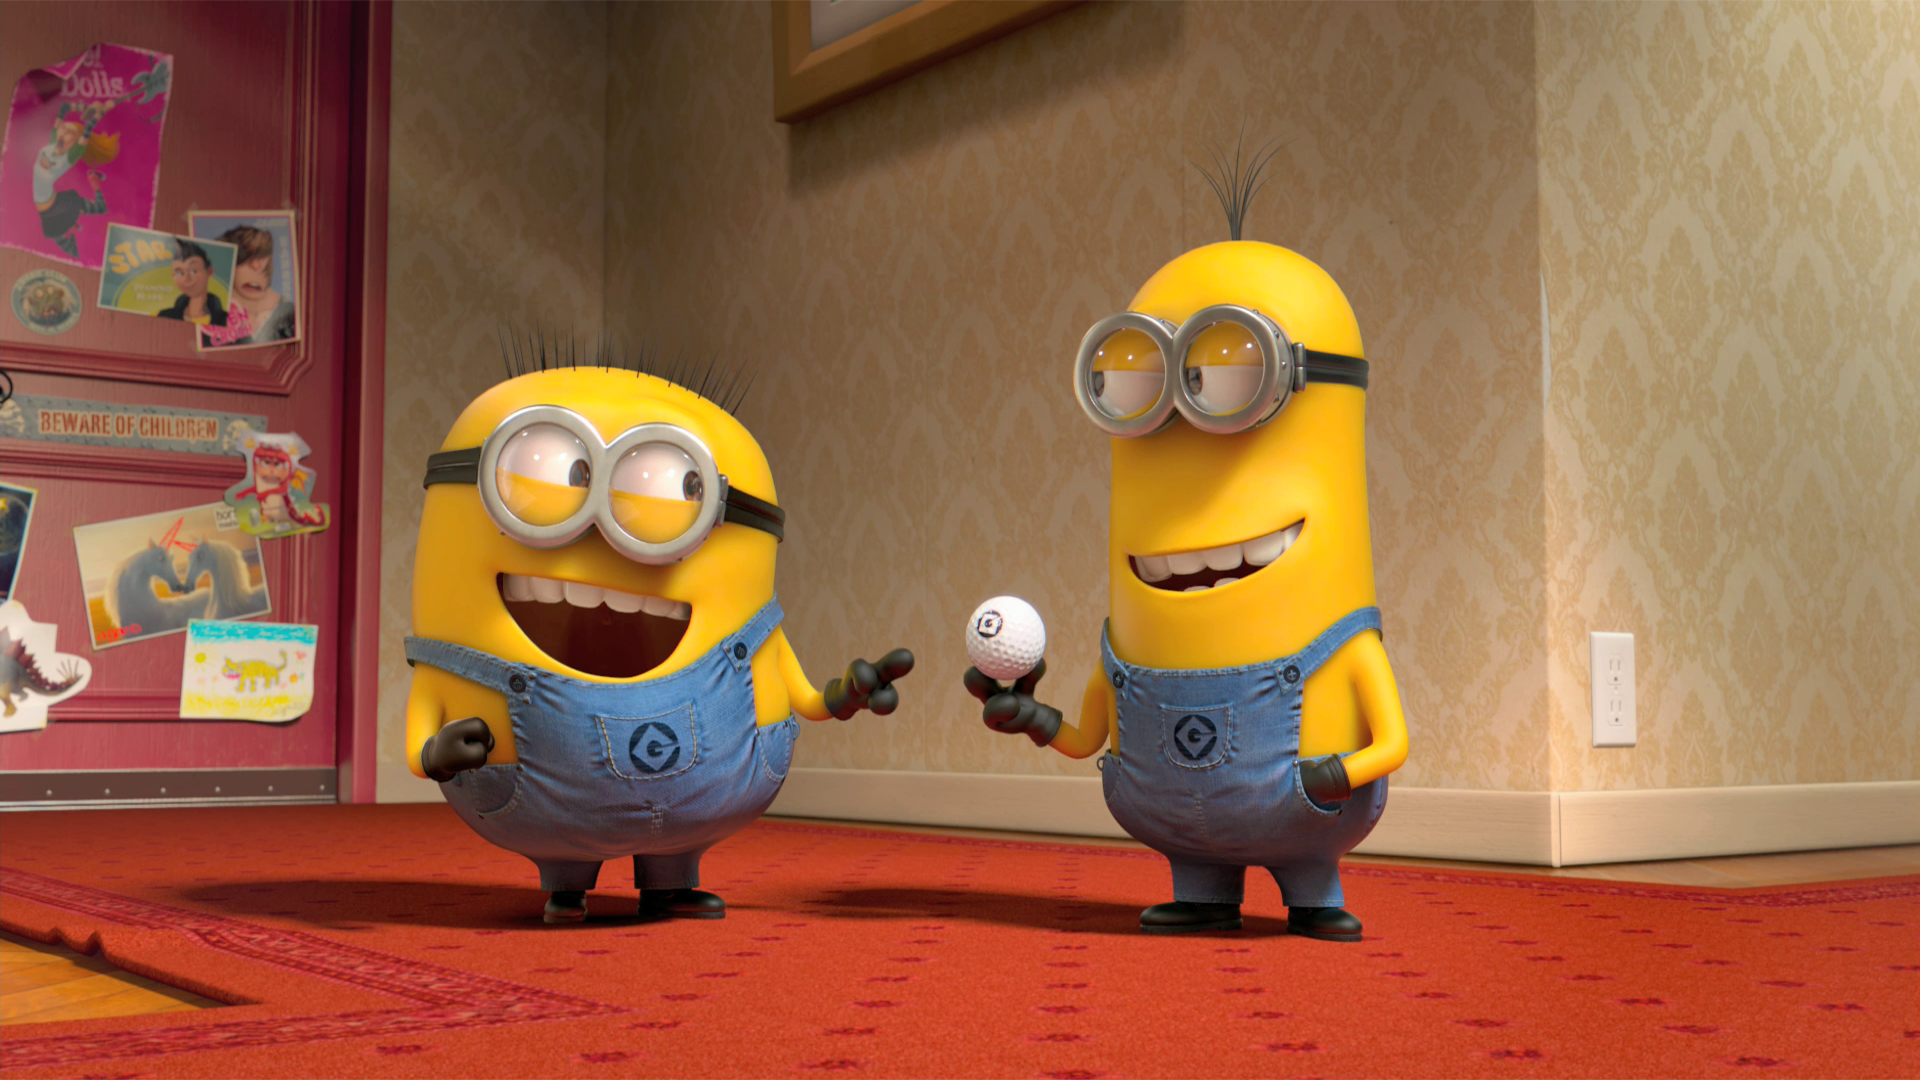 Despicable-Me-HD-Images-Despicable-Me-Collection-wallpaper-wpc5804095